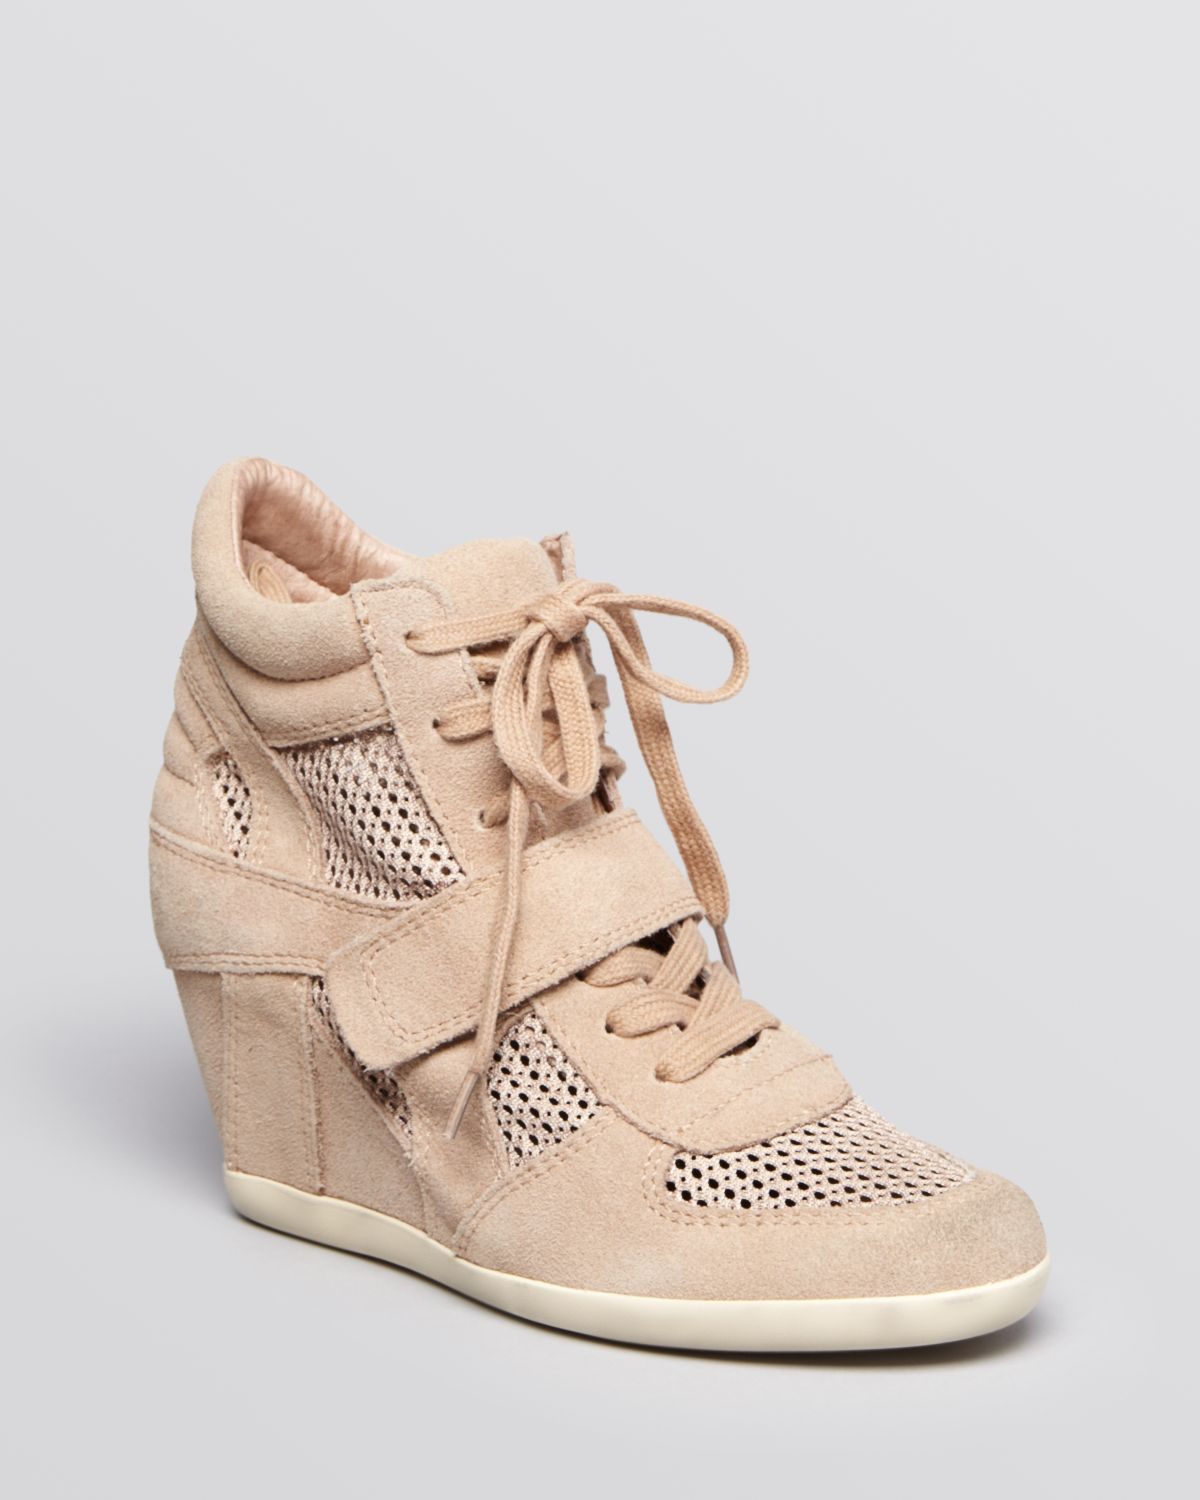 176edd4de59 Gallery. Previously sold at  Bloomingdale s · Women s Wedge Sneakers  Women s Ash Bowie ...